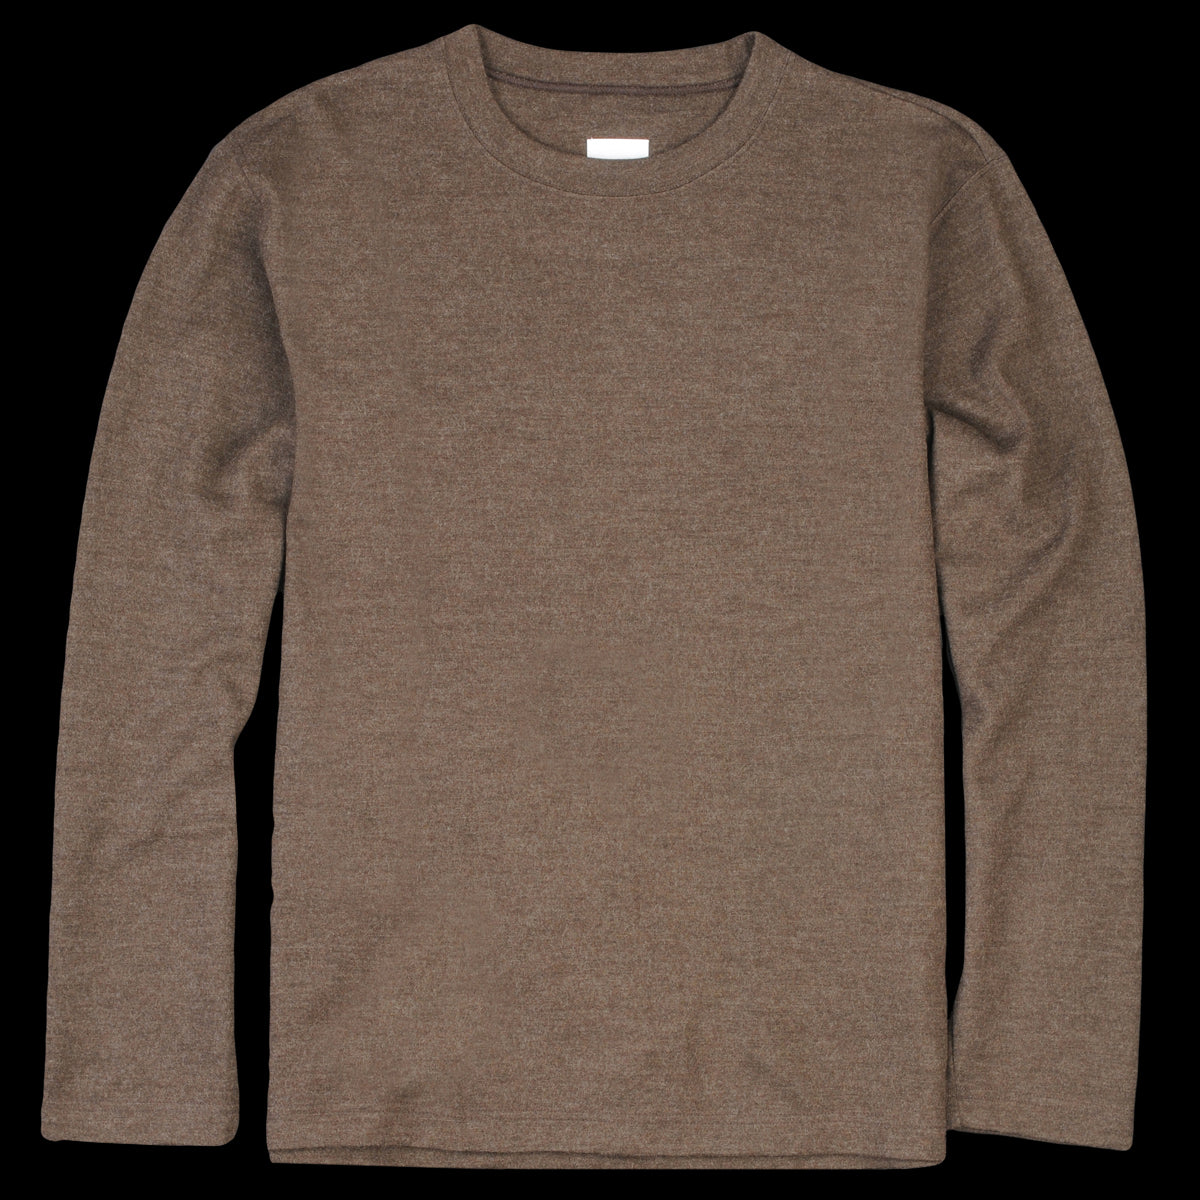 Ts(S) - Washable Milled Wool Jersey Crew Neck Shirt in Brown - UNIONMADE bab2427eb